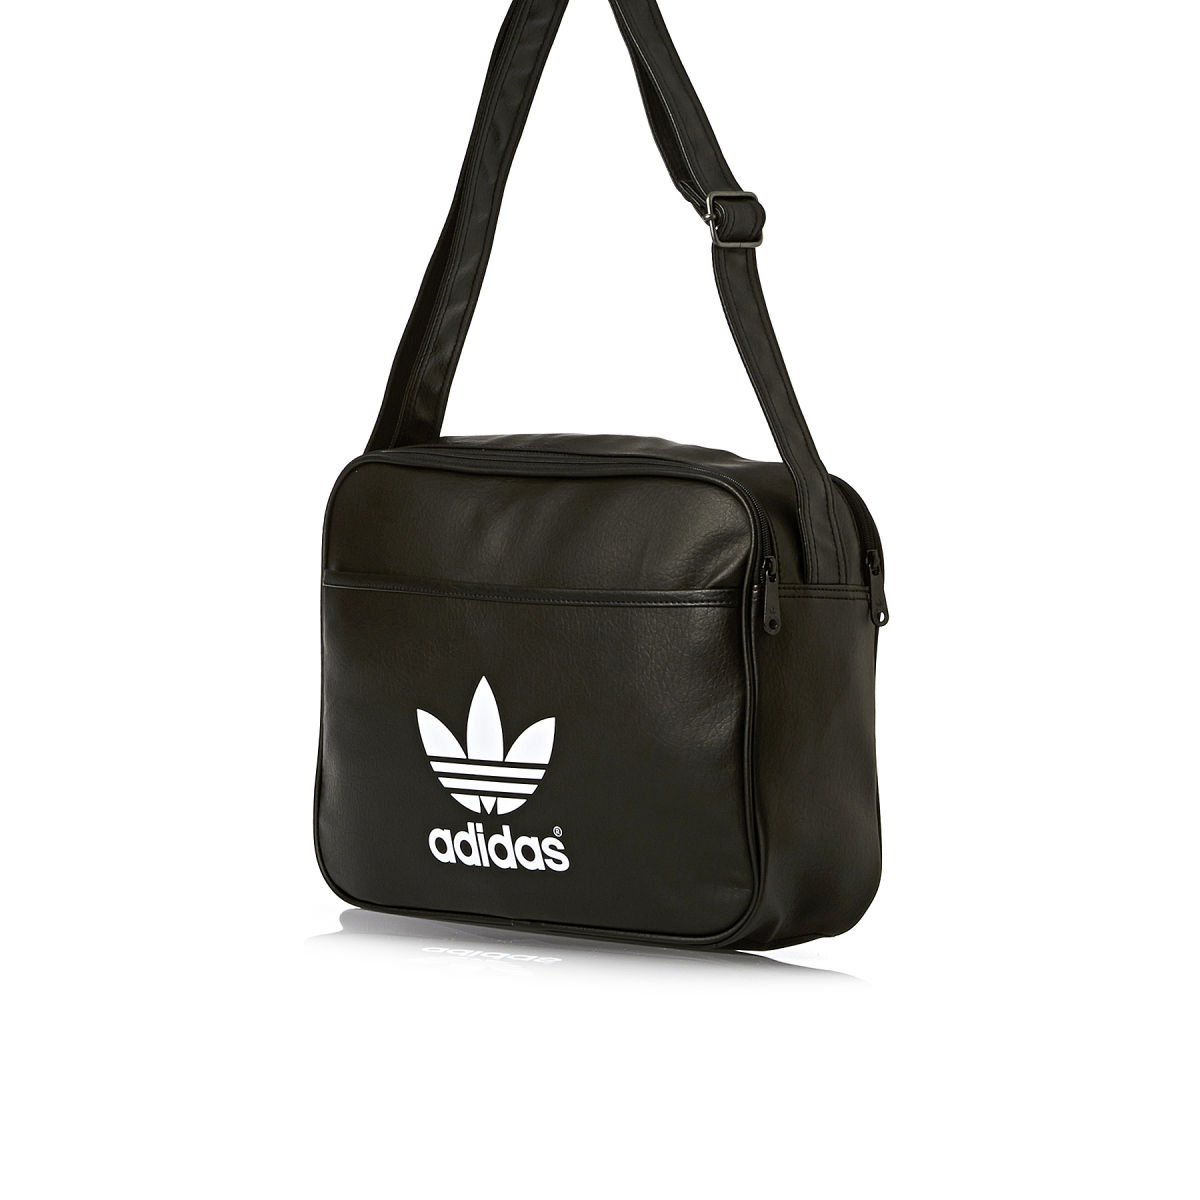 adidas Airliner Classic Shoulder Bag Black black white Size 38 x 12 x 28  cm, 13 Liter  Amazon.co.uk  Sports   Outdoors 3aecc78501